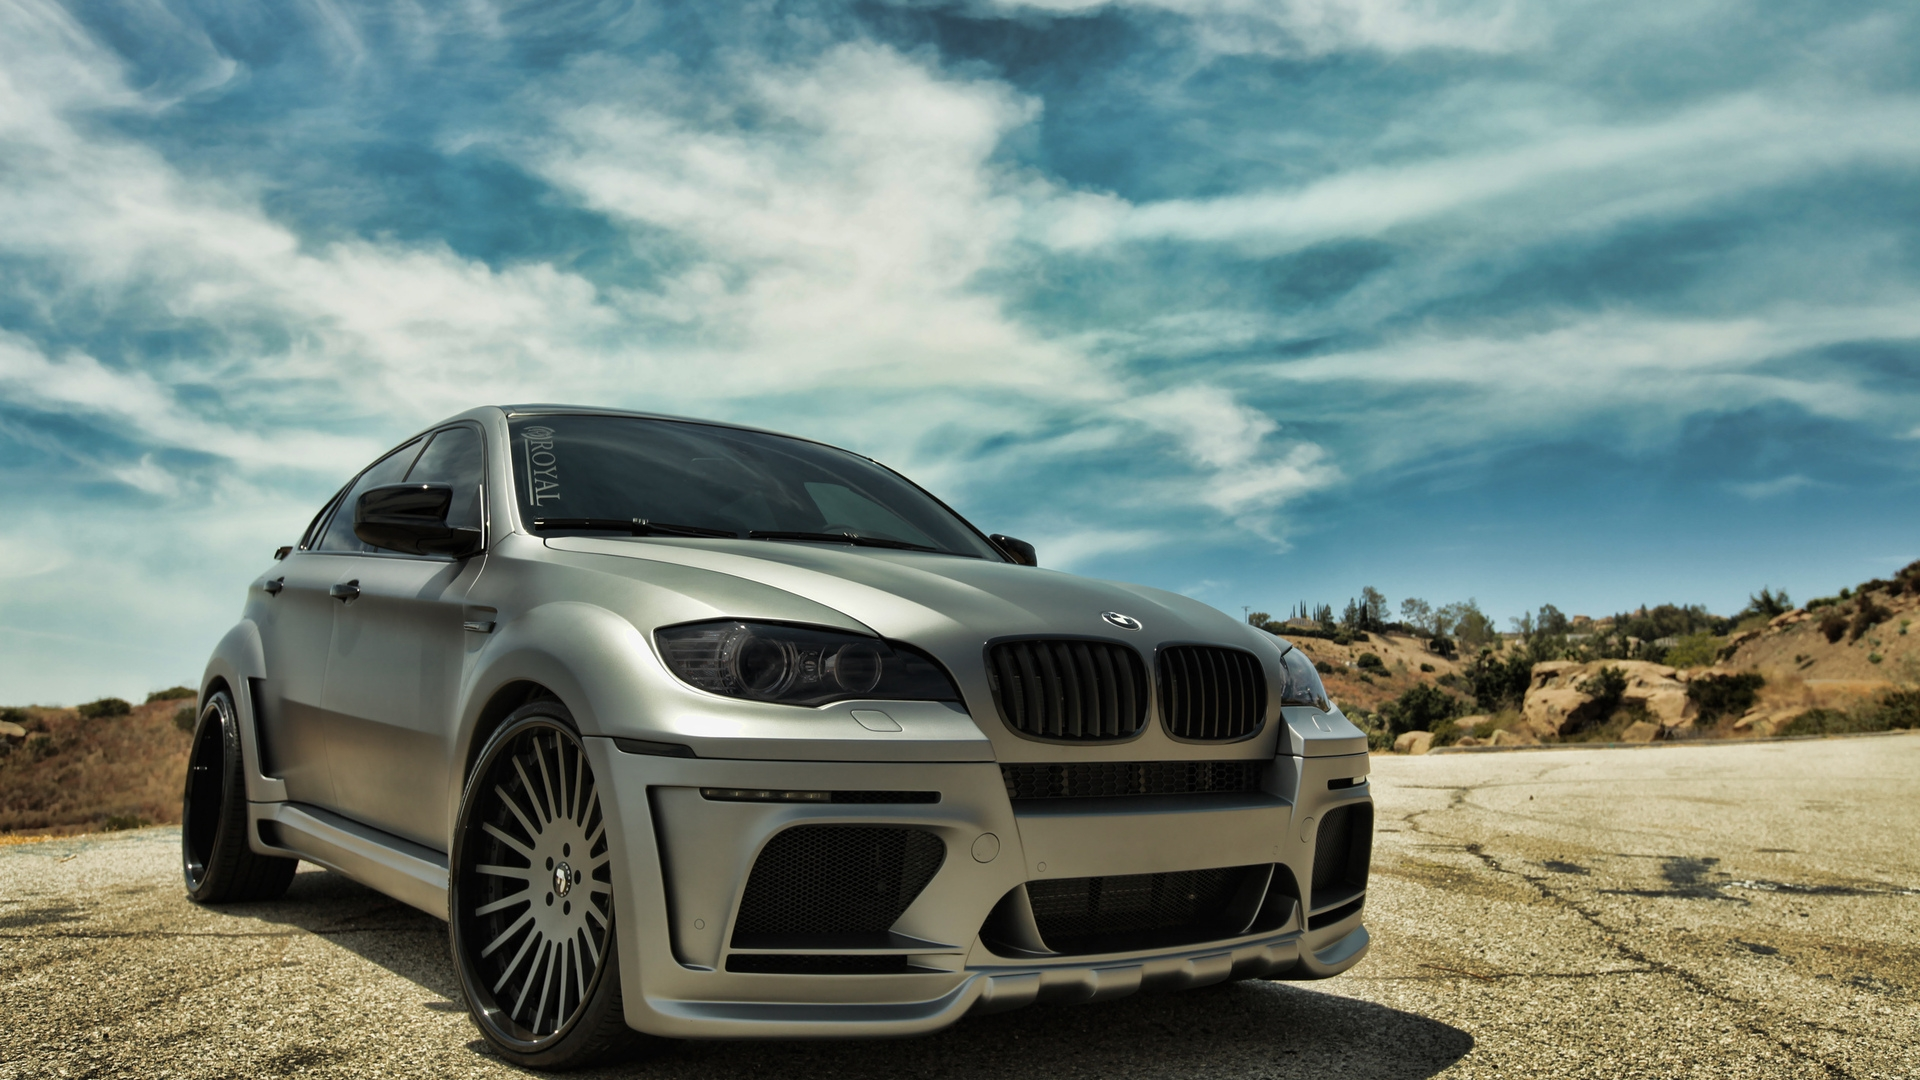 Tuning Car Wallpapers Posted By Christopher Johnson